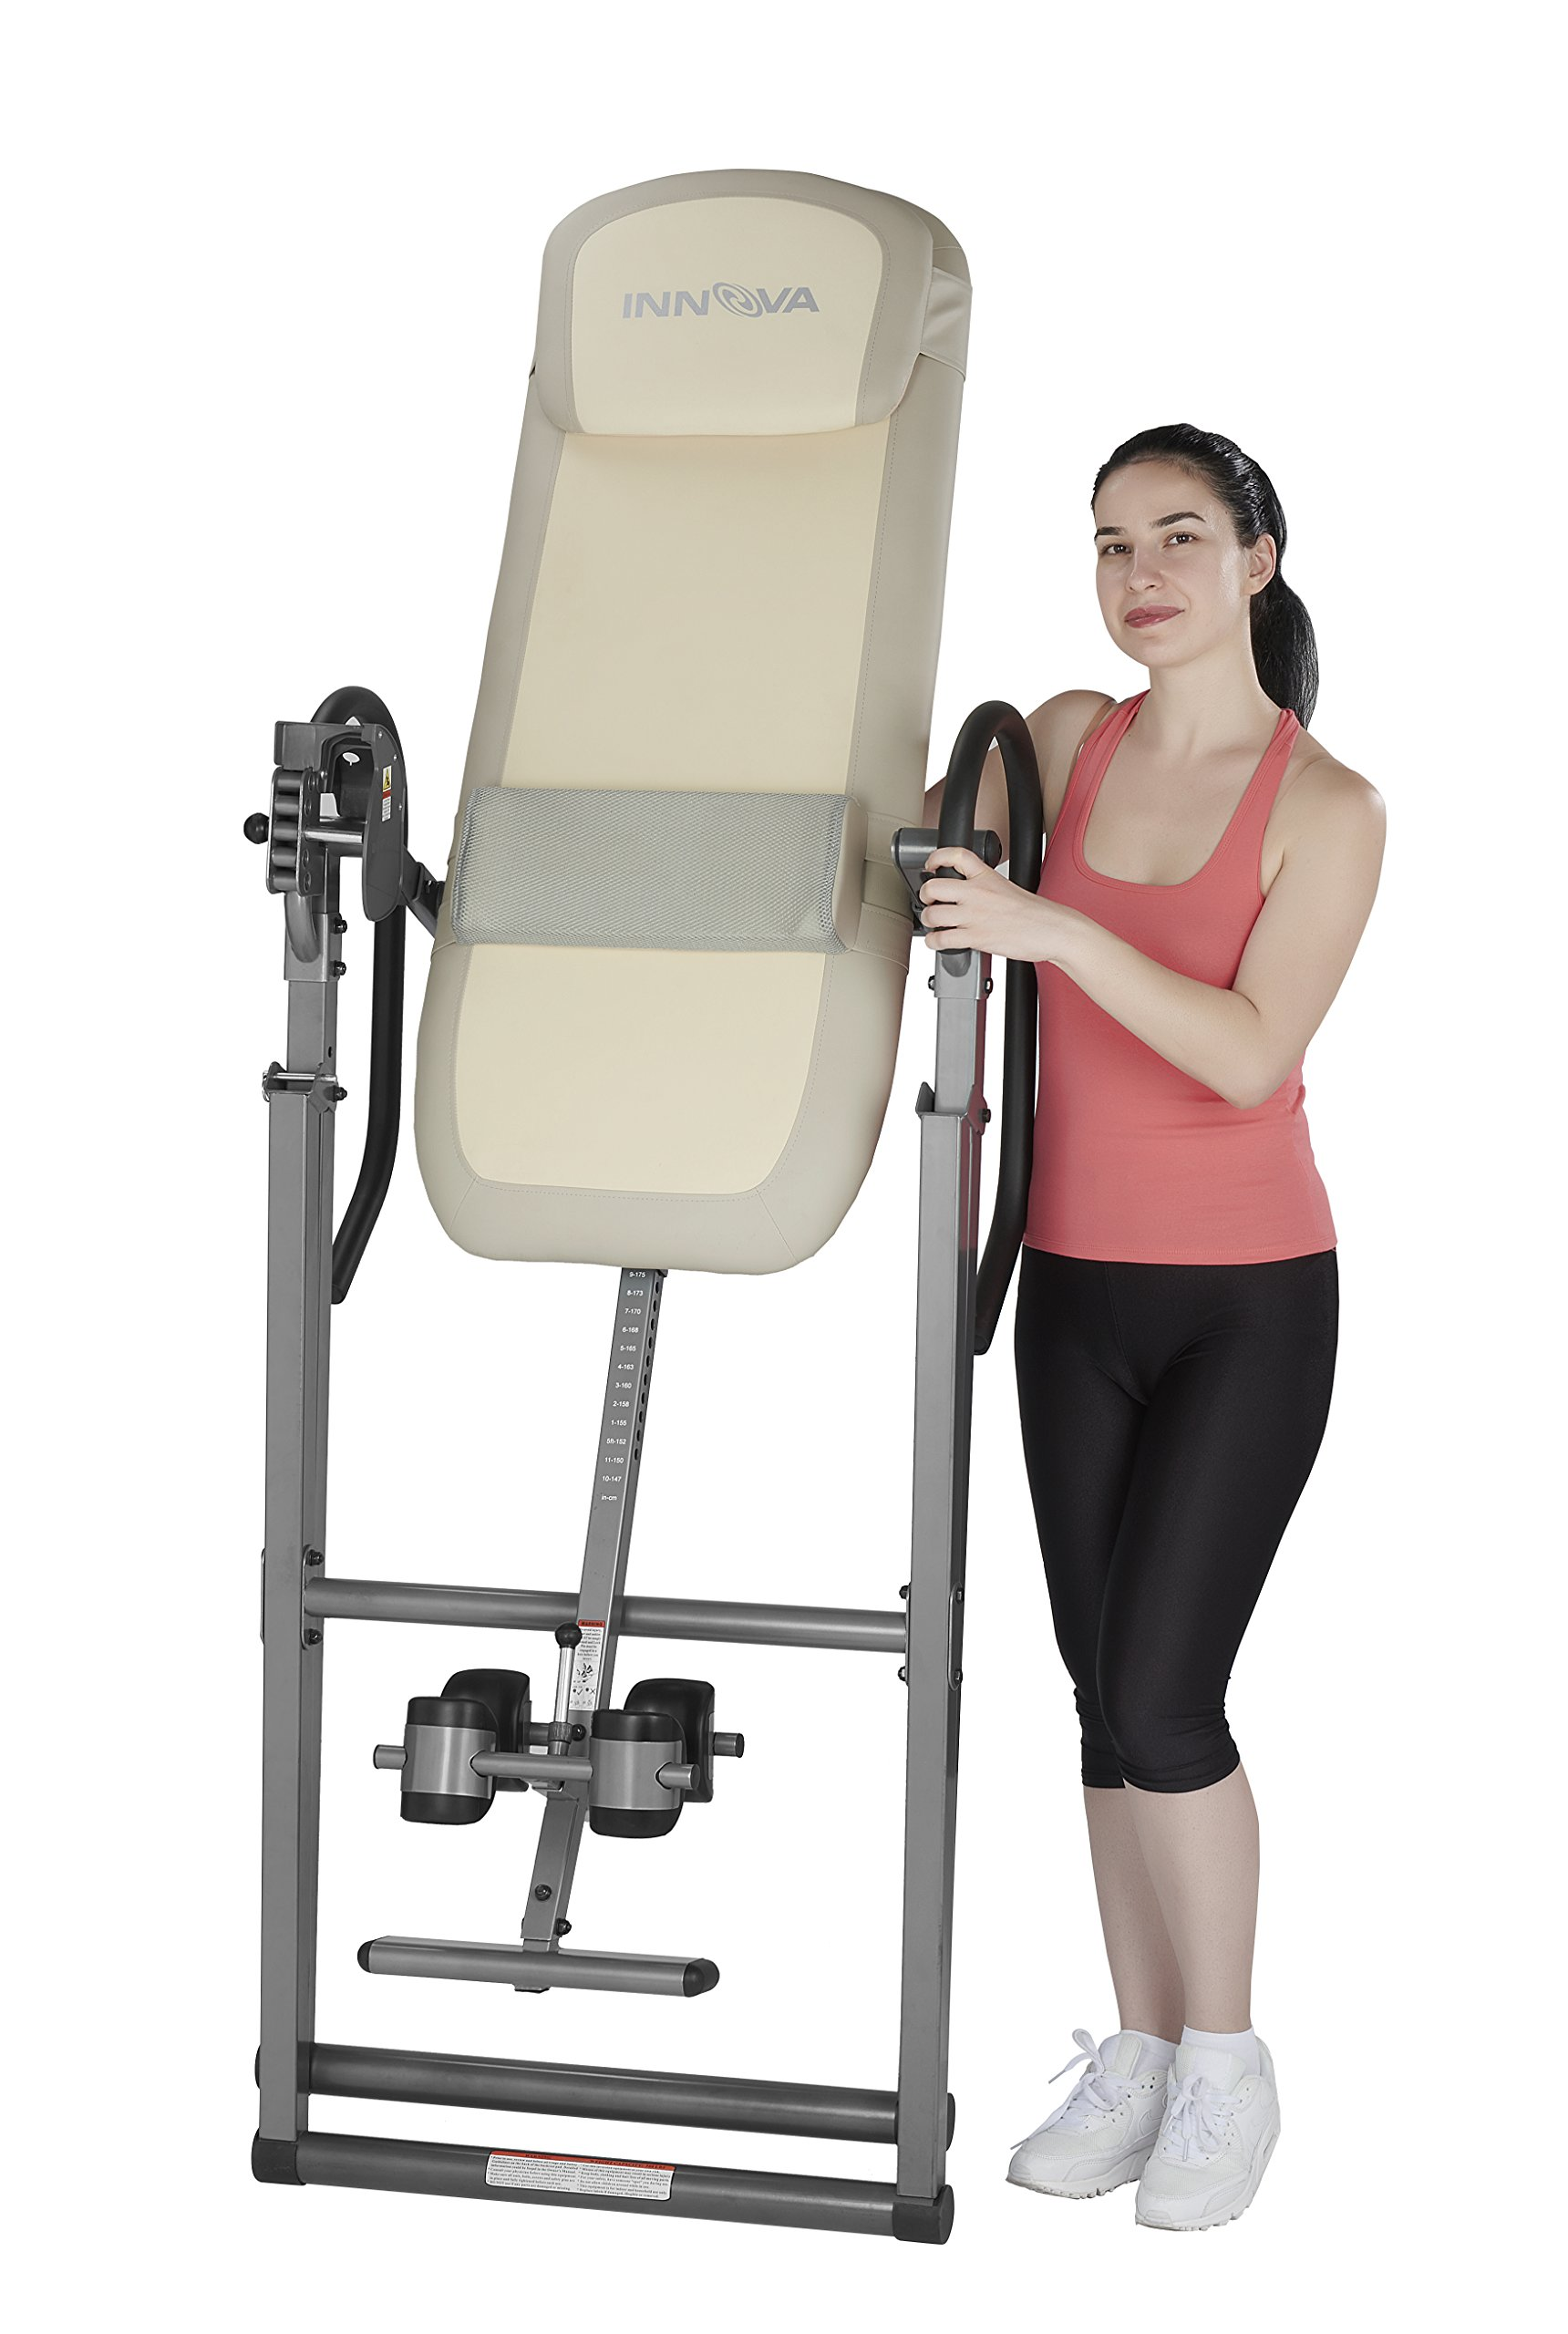 Innova ITX9700 Memory Foam Inversion Table with Lumbar Pad for Hot and Cold Compress by Innova Health and Fitness (Image #3)